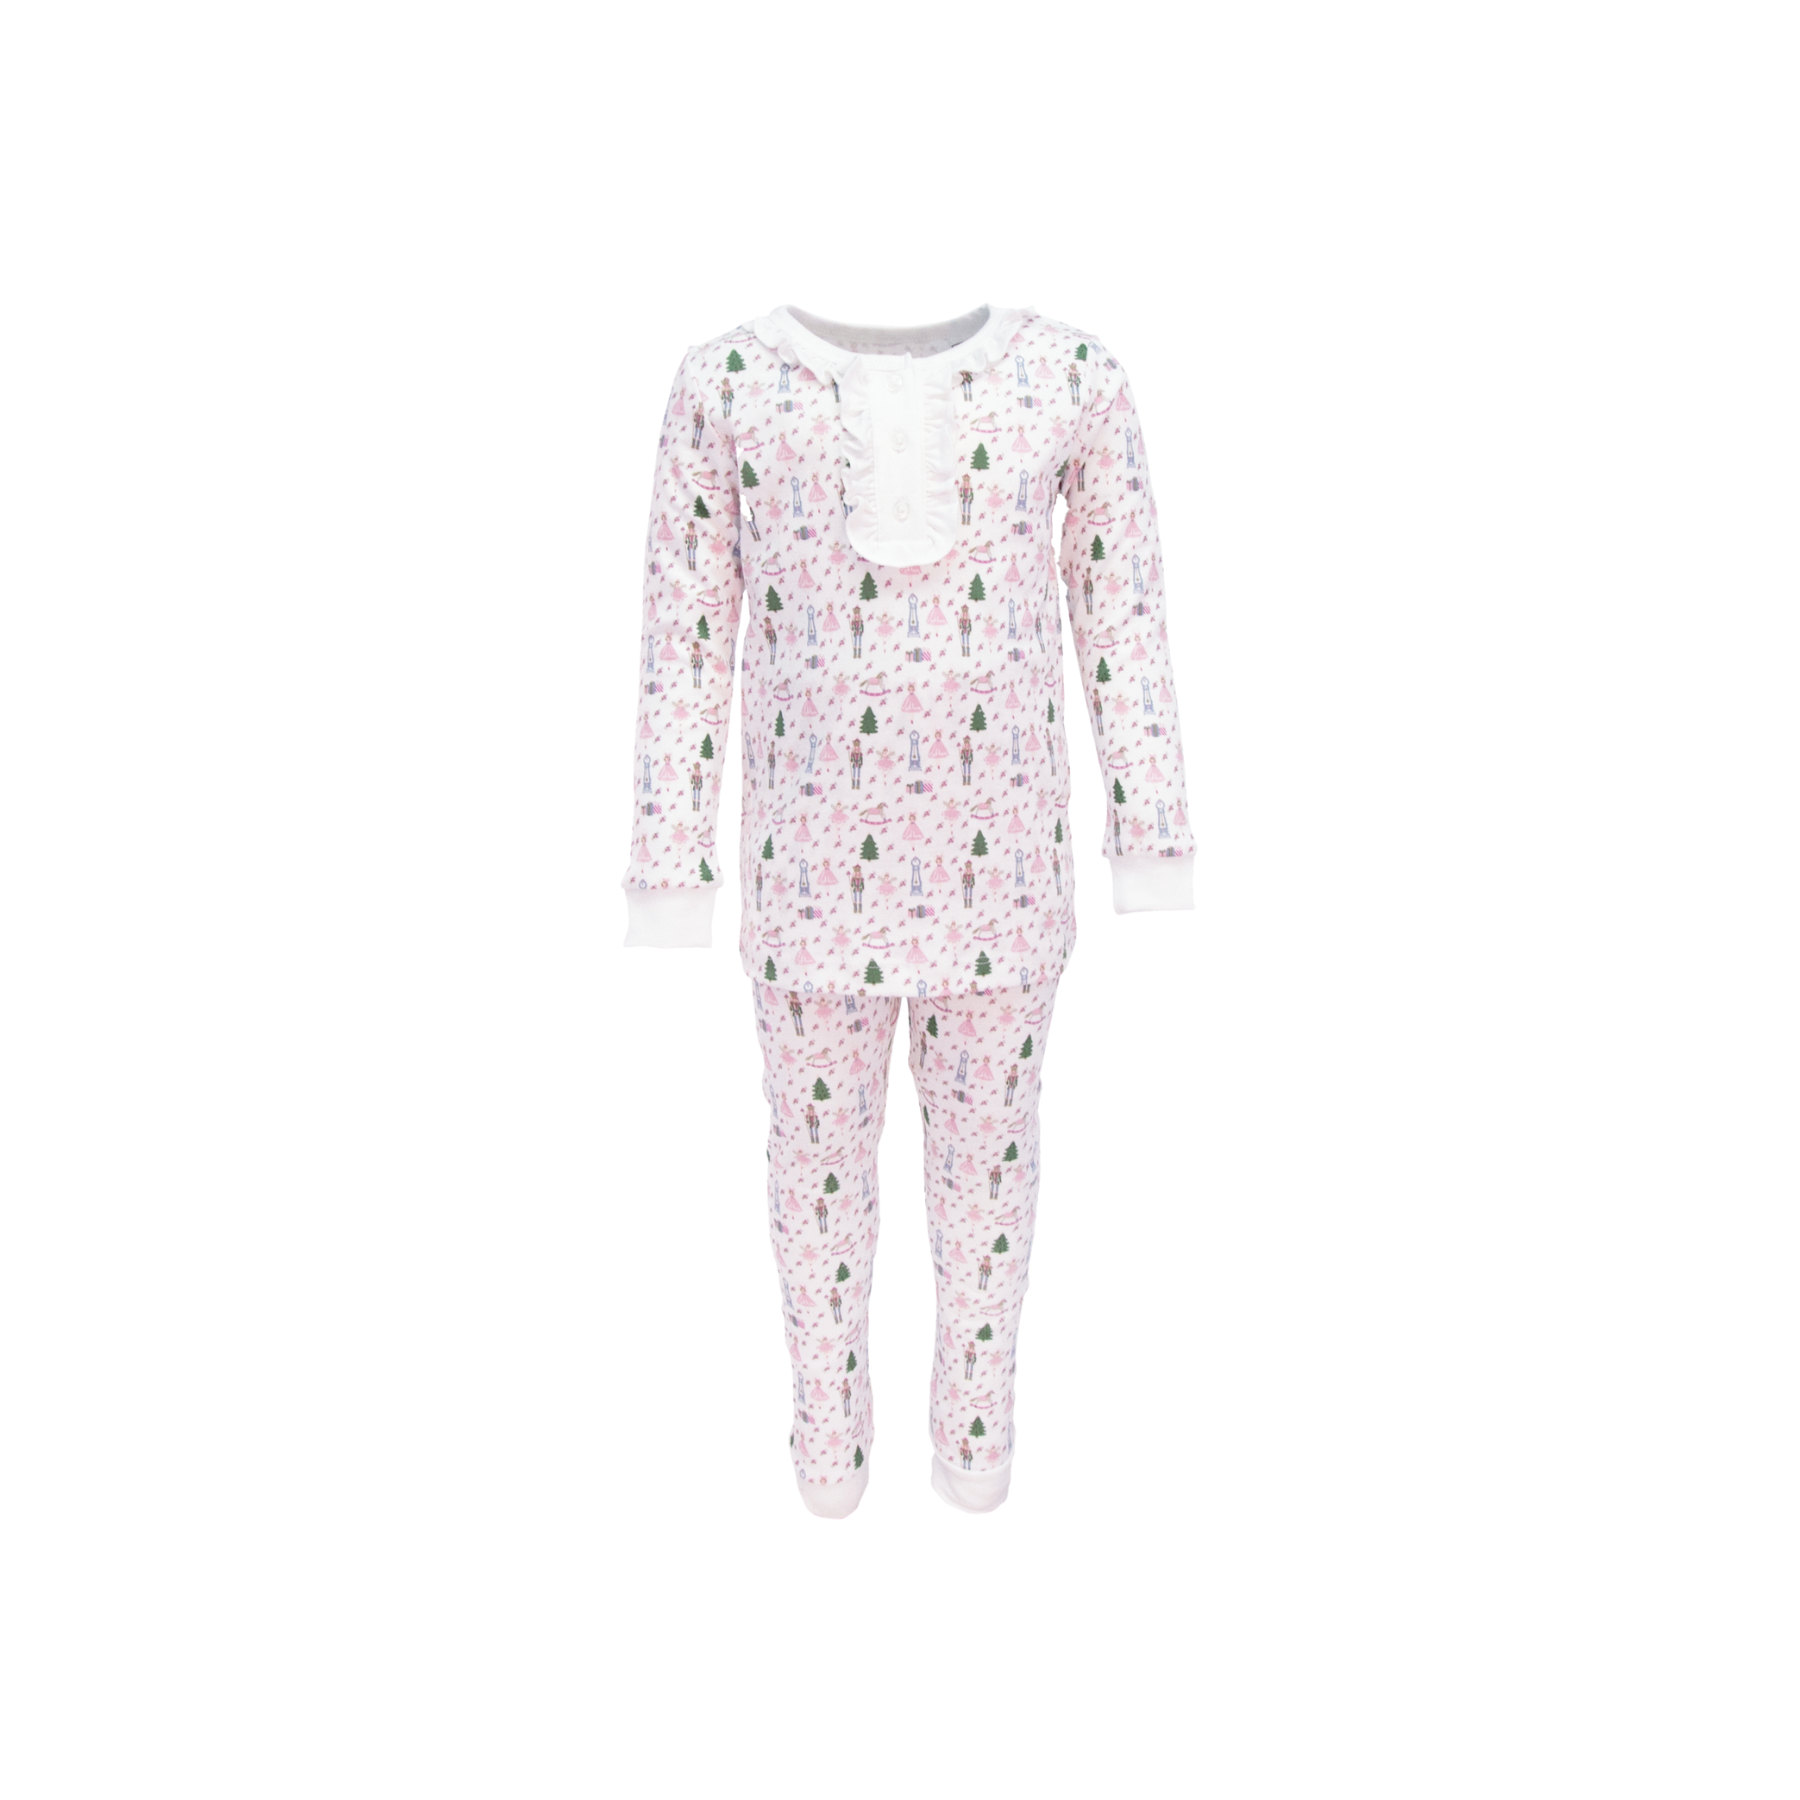 Alden Nutcracker Pajama Set